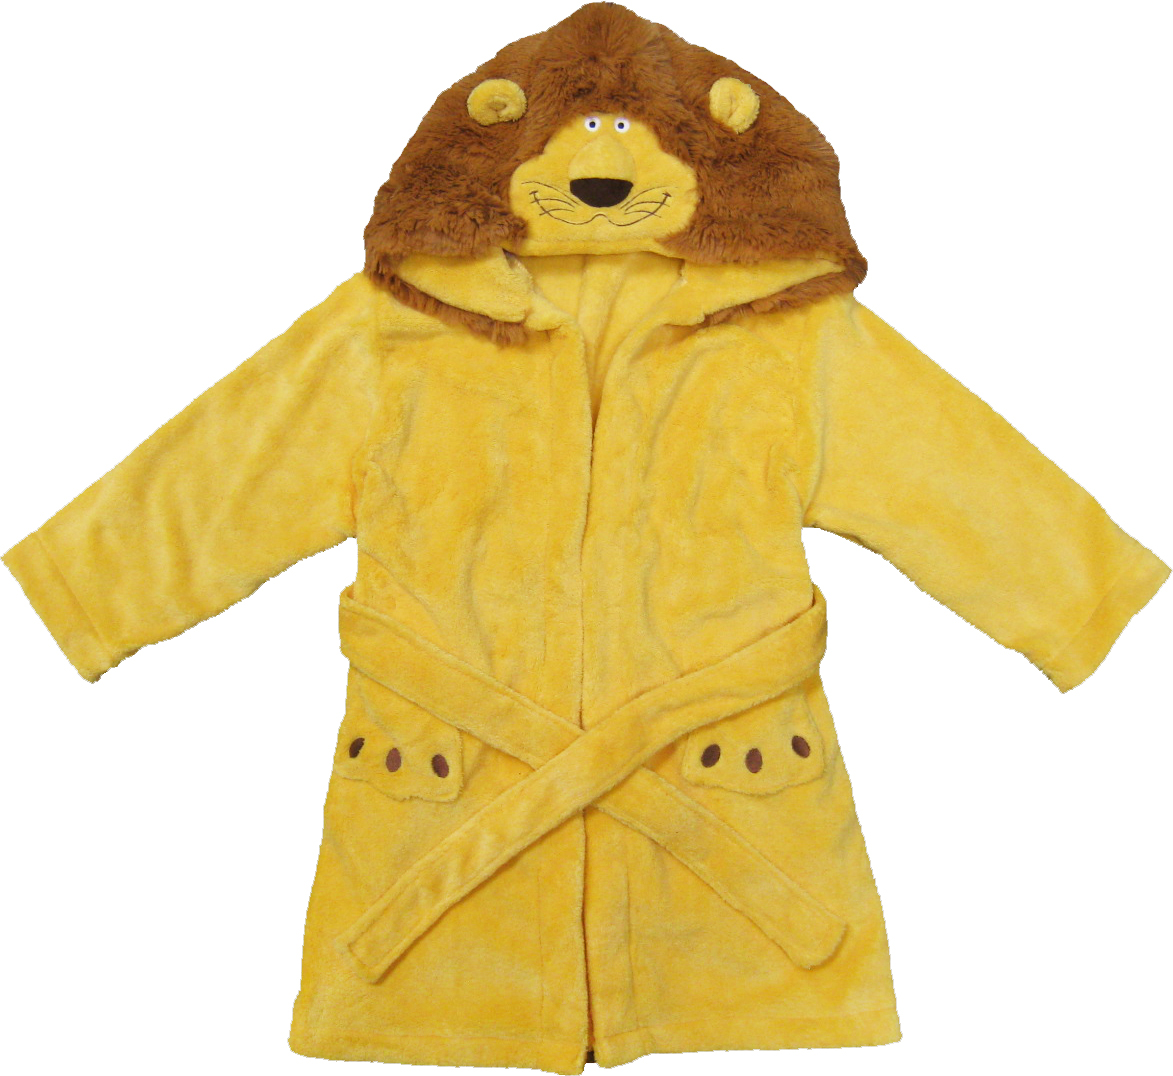 Kreative Kids lion children's robe